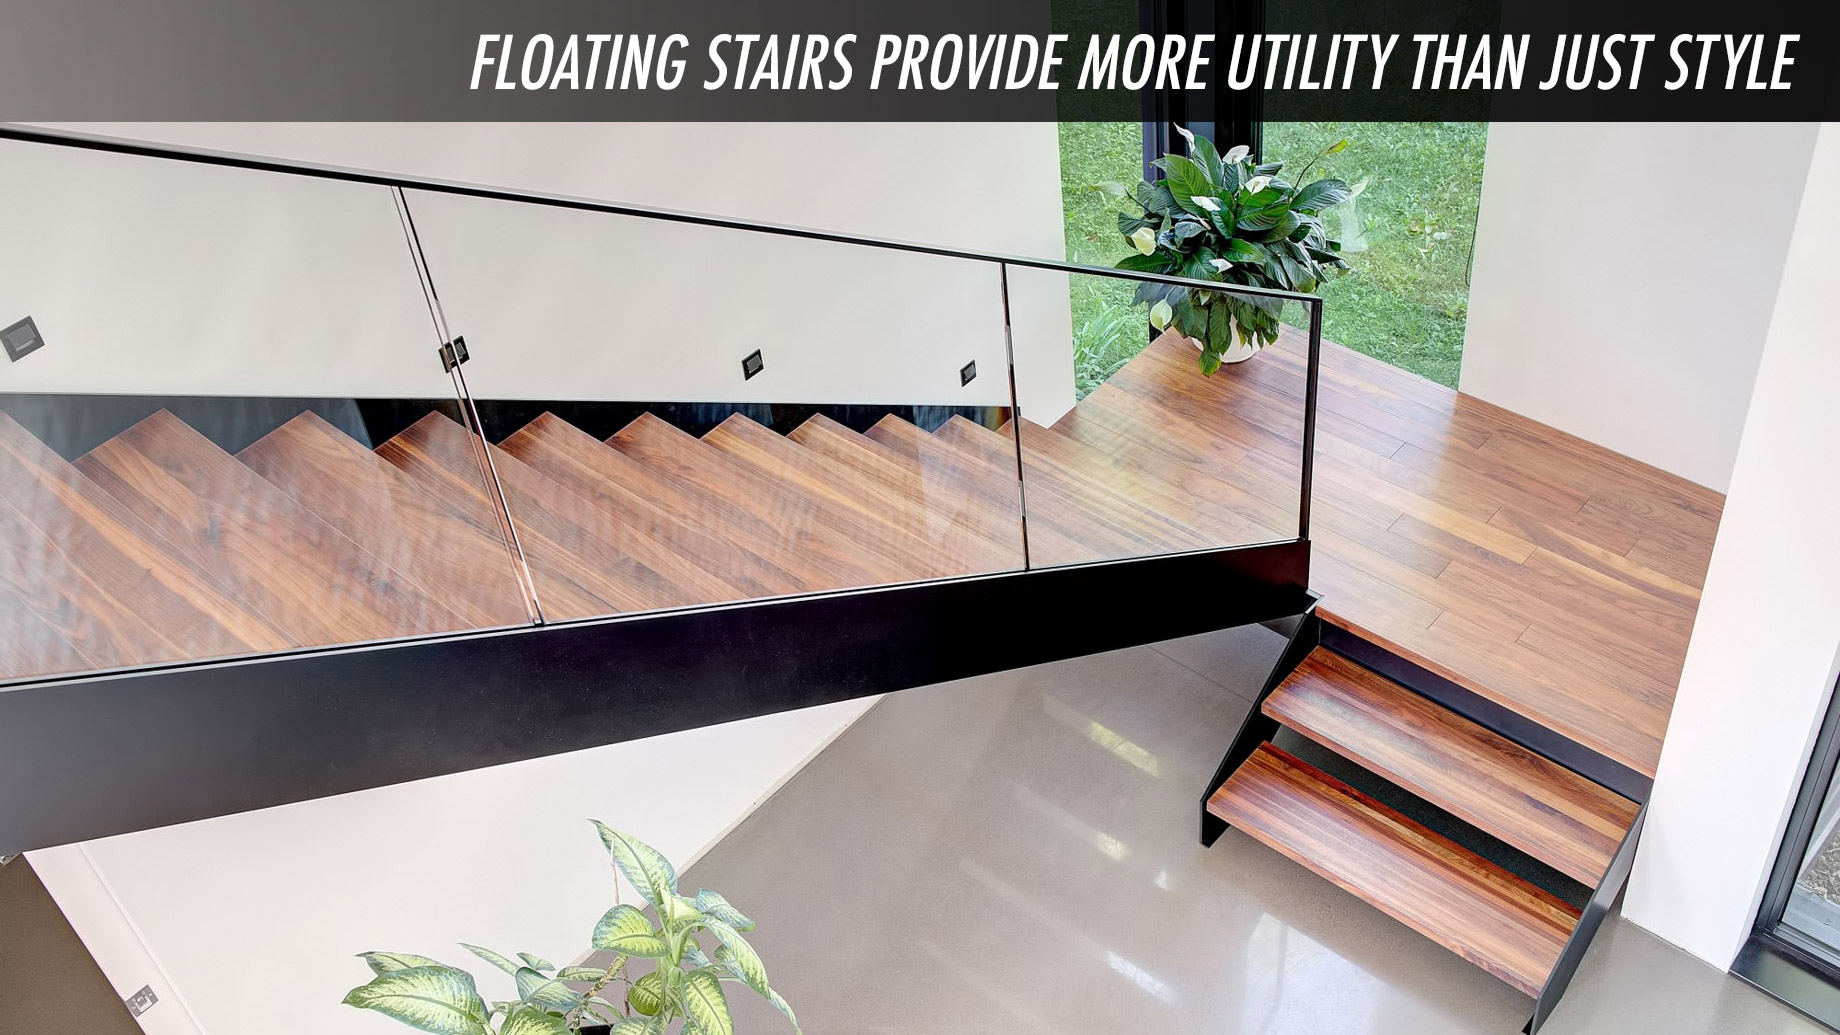 Home Design Tips – Floating Stairs Provide More Utility Than Just   Design For Stairs At Home   Iron   Interior Design   Stairway   Wood   Living Room